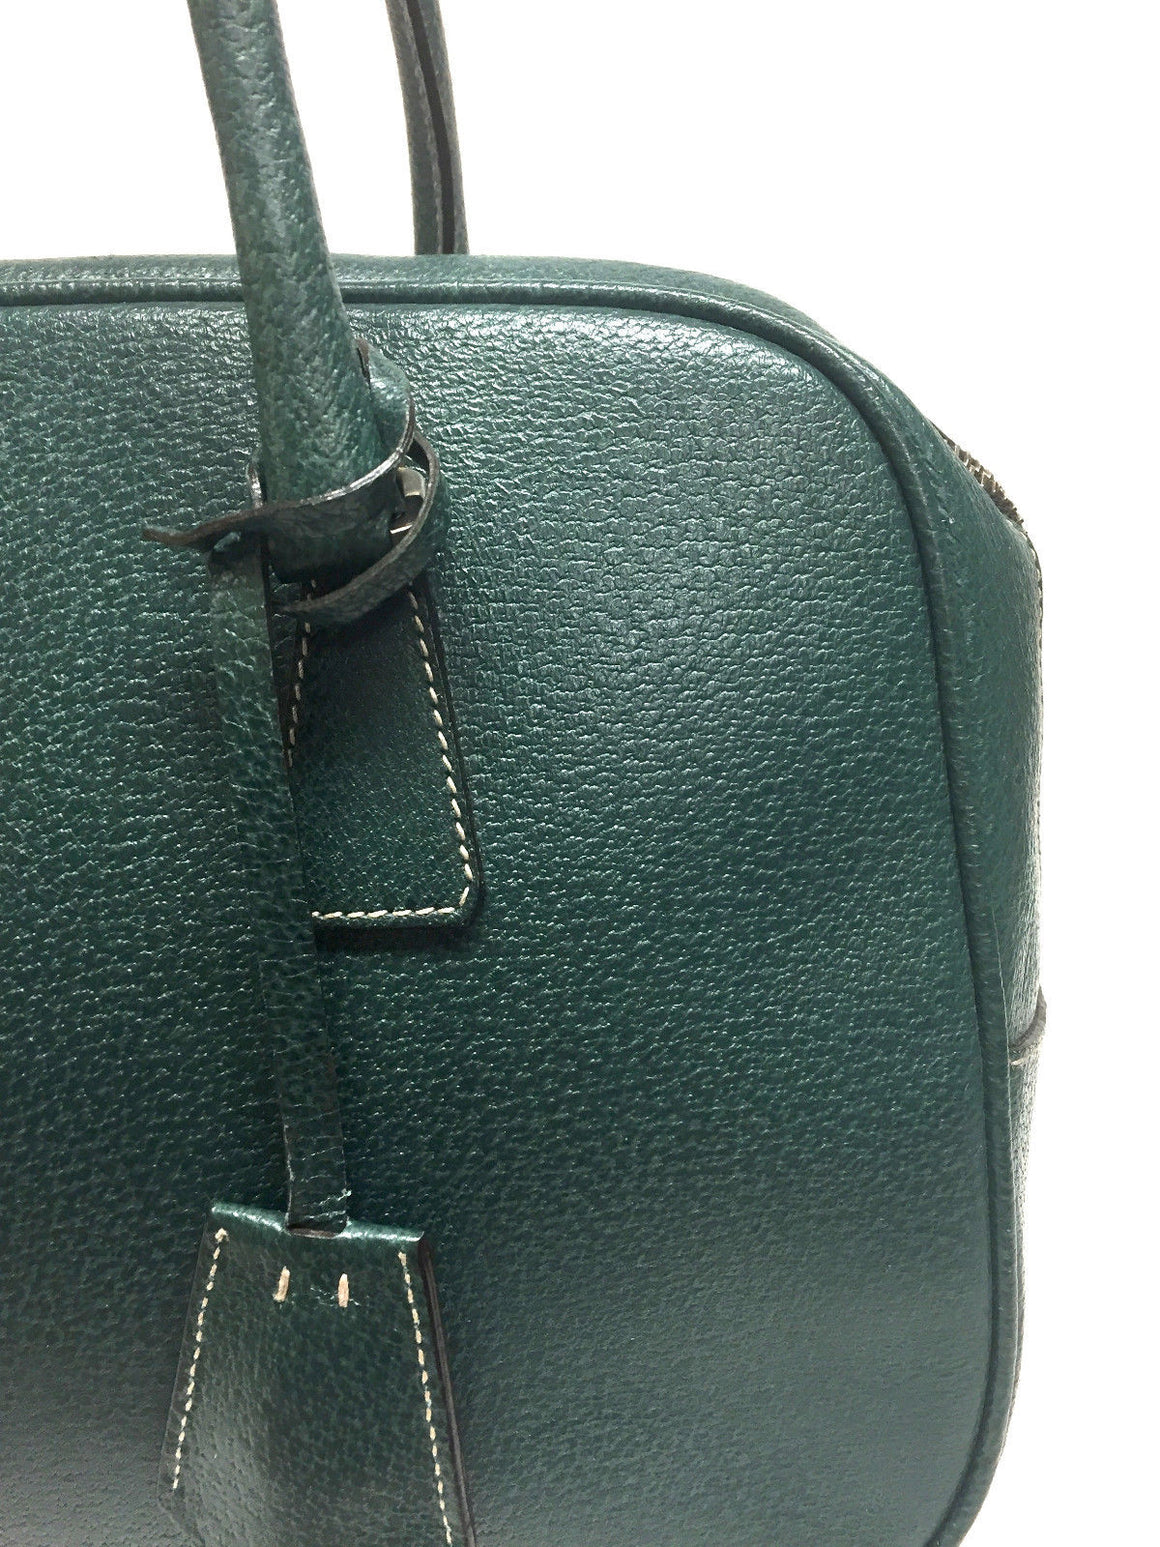 PRADA Green Textured Leather Zip-Top Hand Bag Satchel